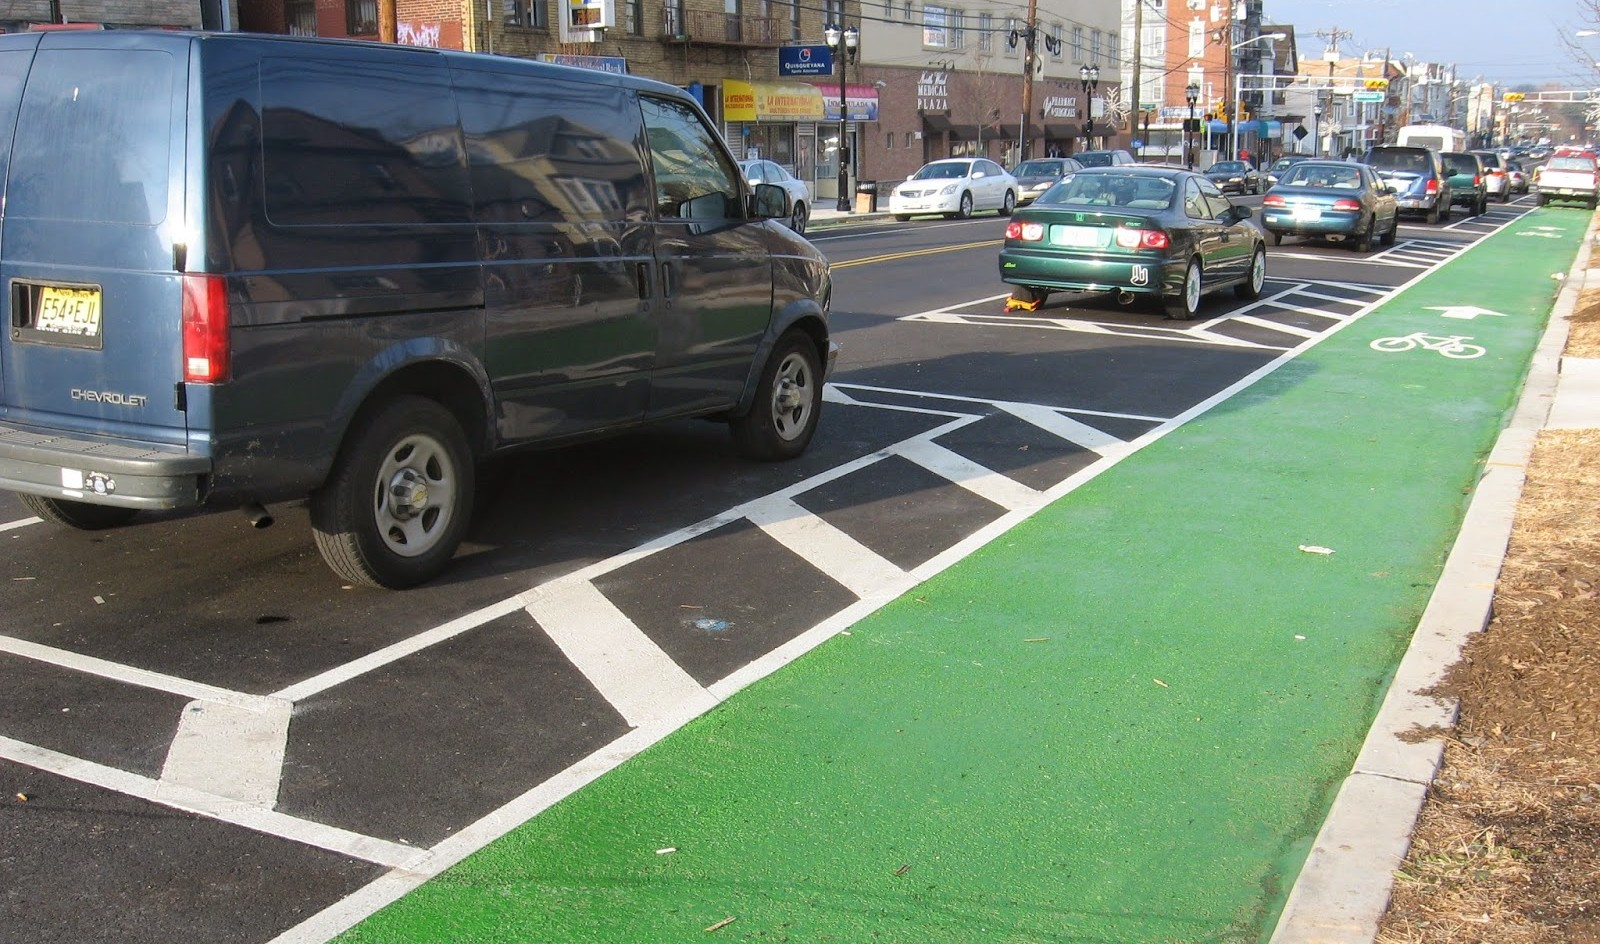 Newark Clears Bike Lane of Cars, Solves Parking Problem With ...